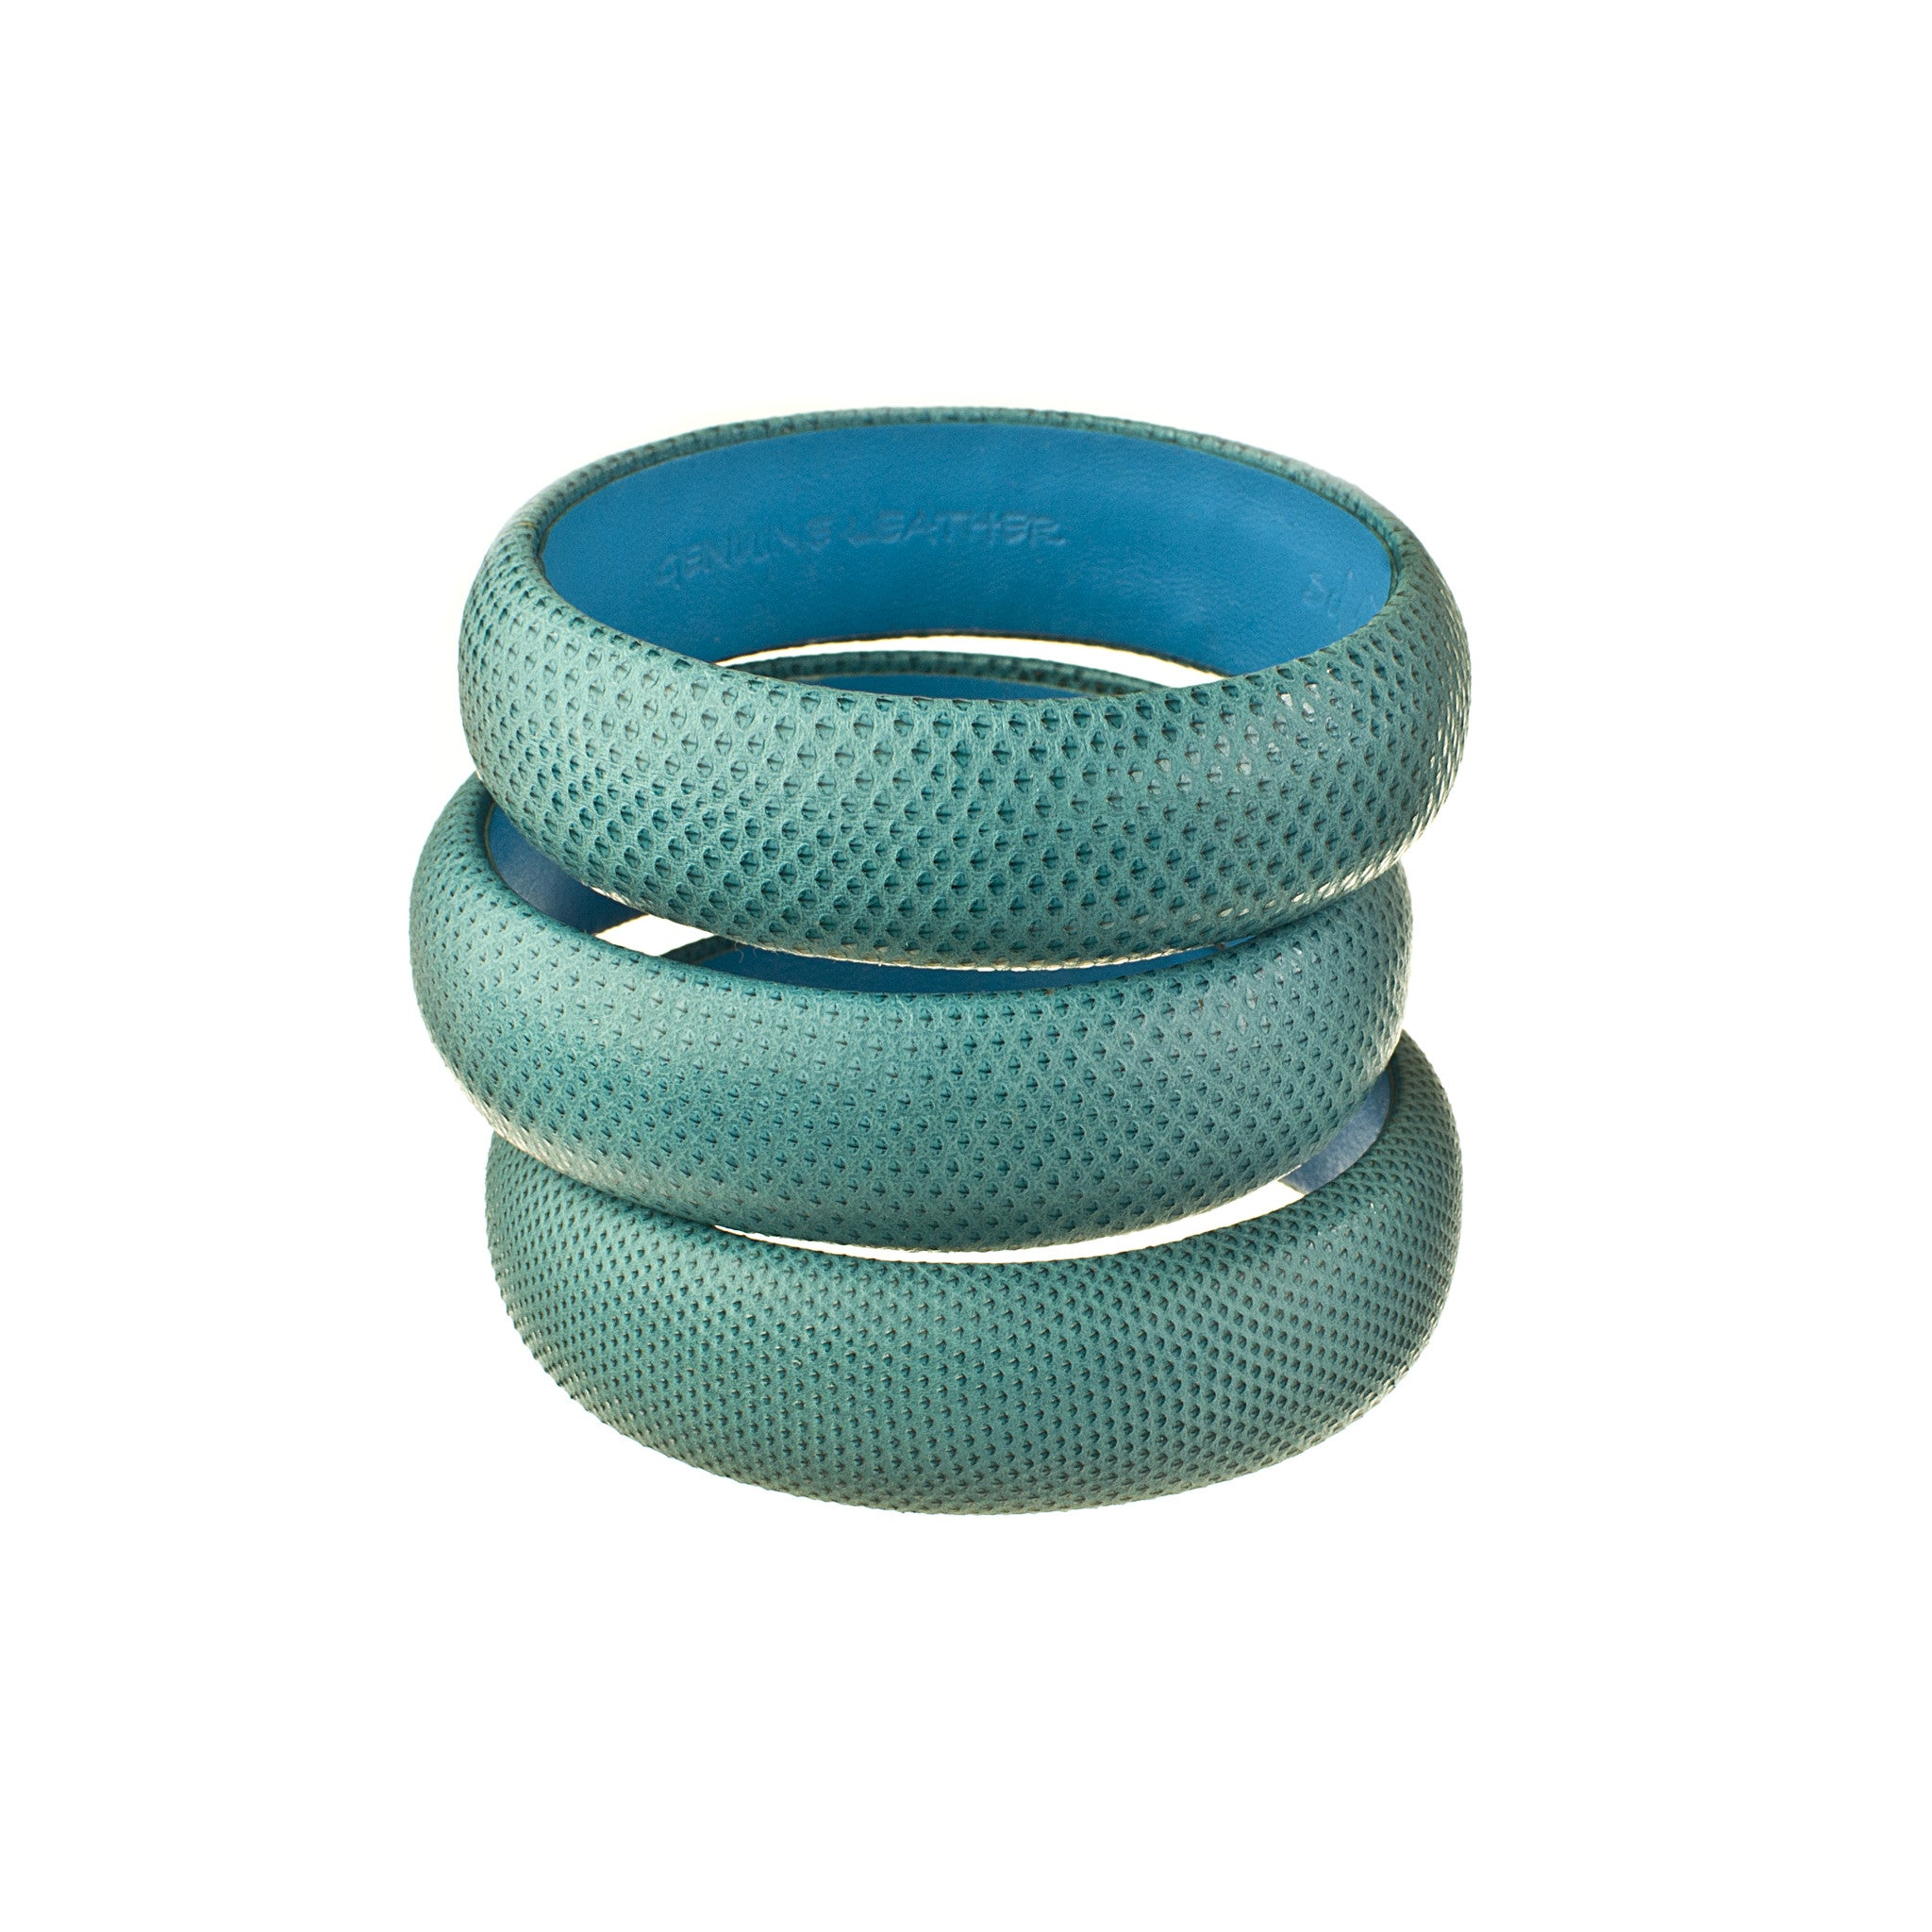 blue snakeskin leather medium bracelet stack